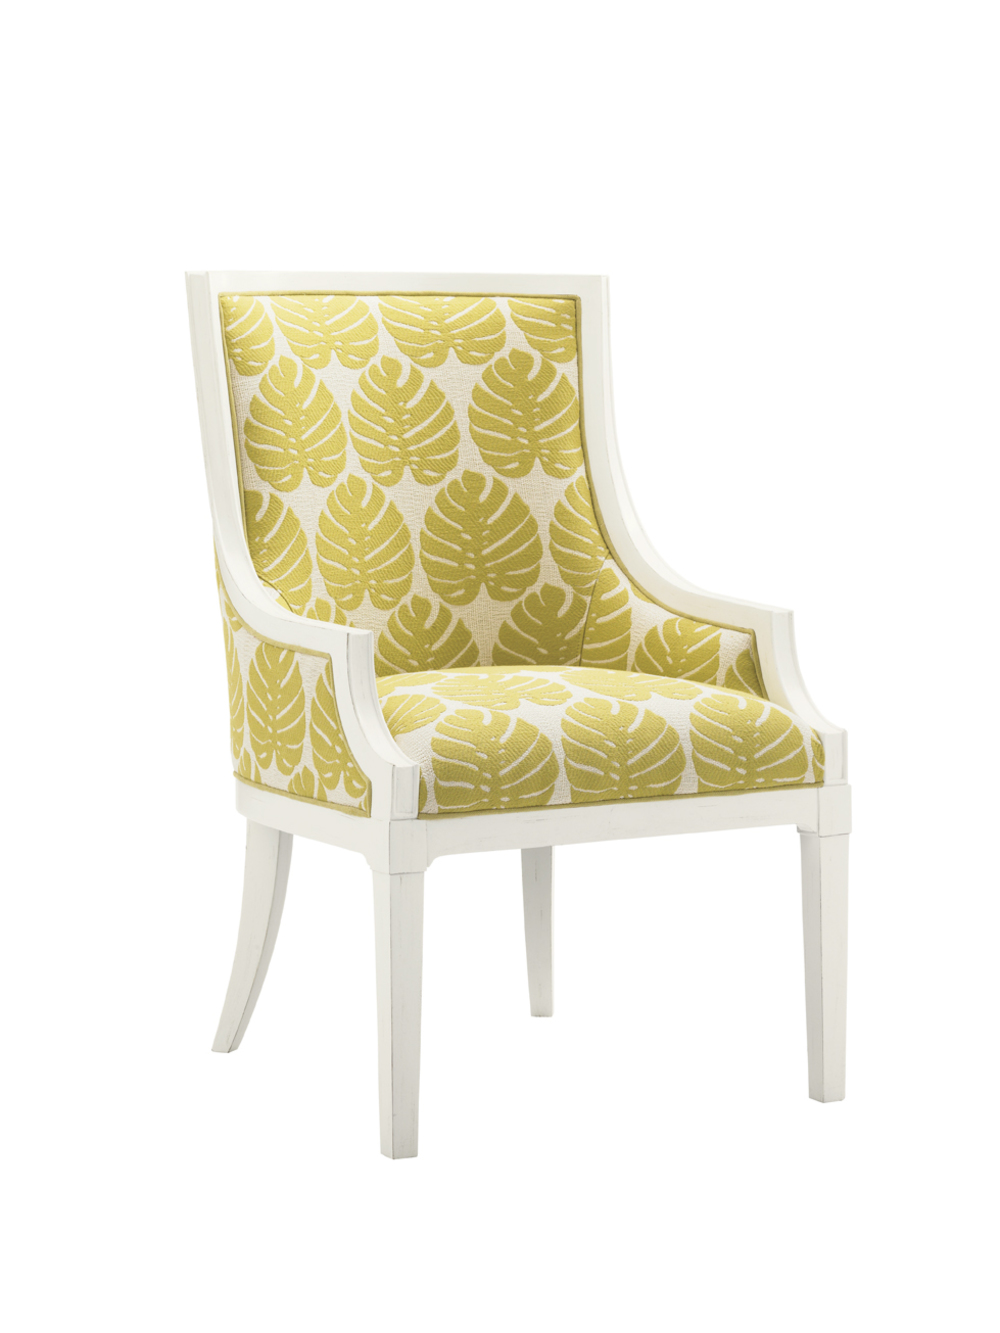 Lexington - Aqua Bay Chair